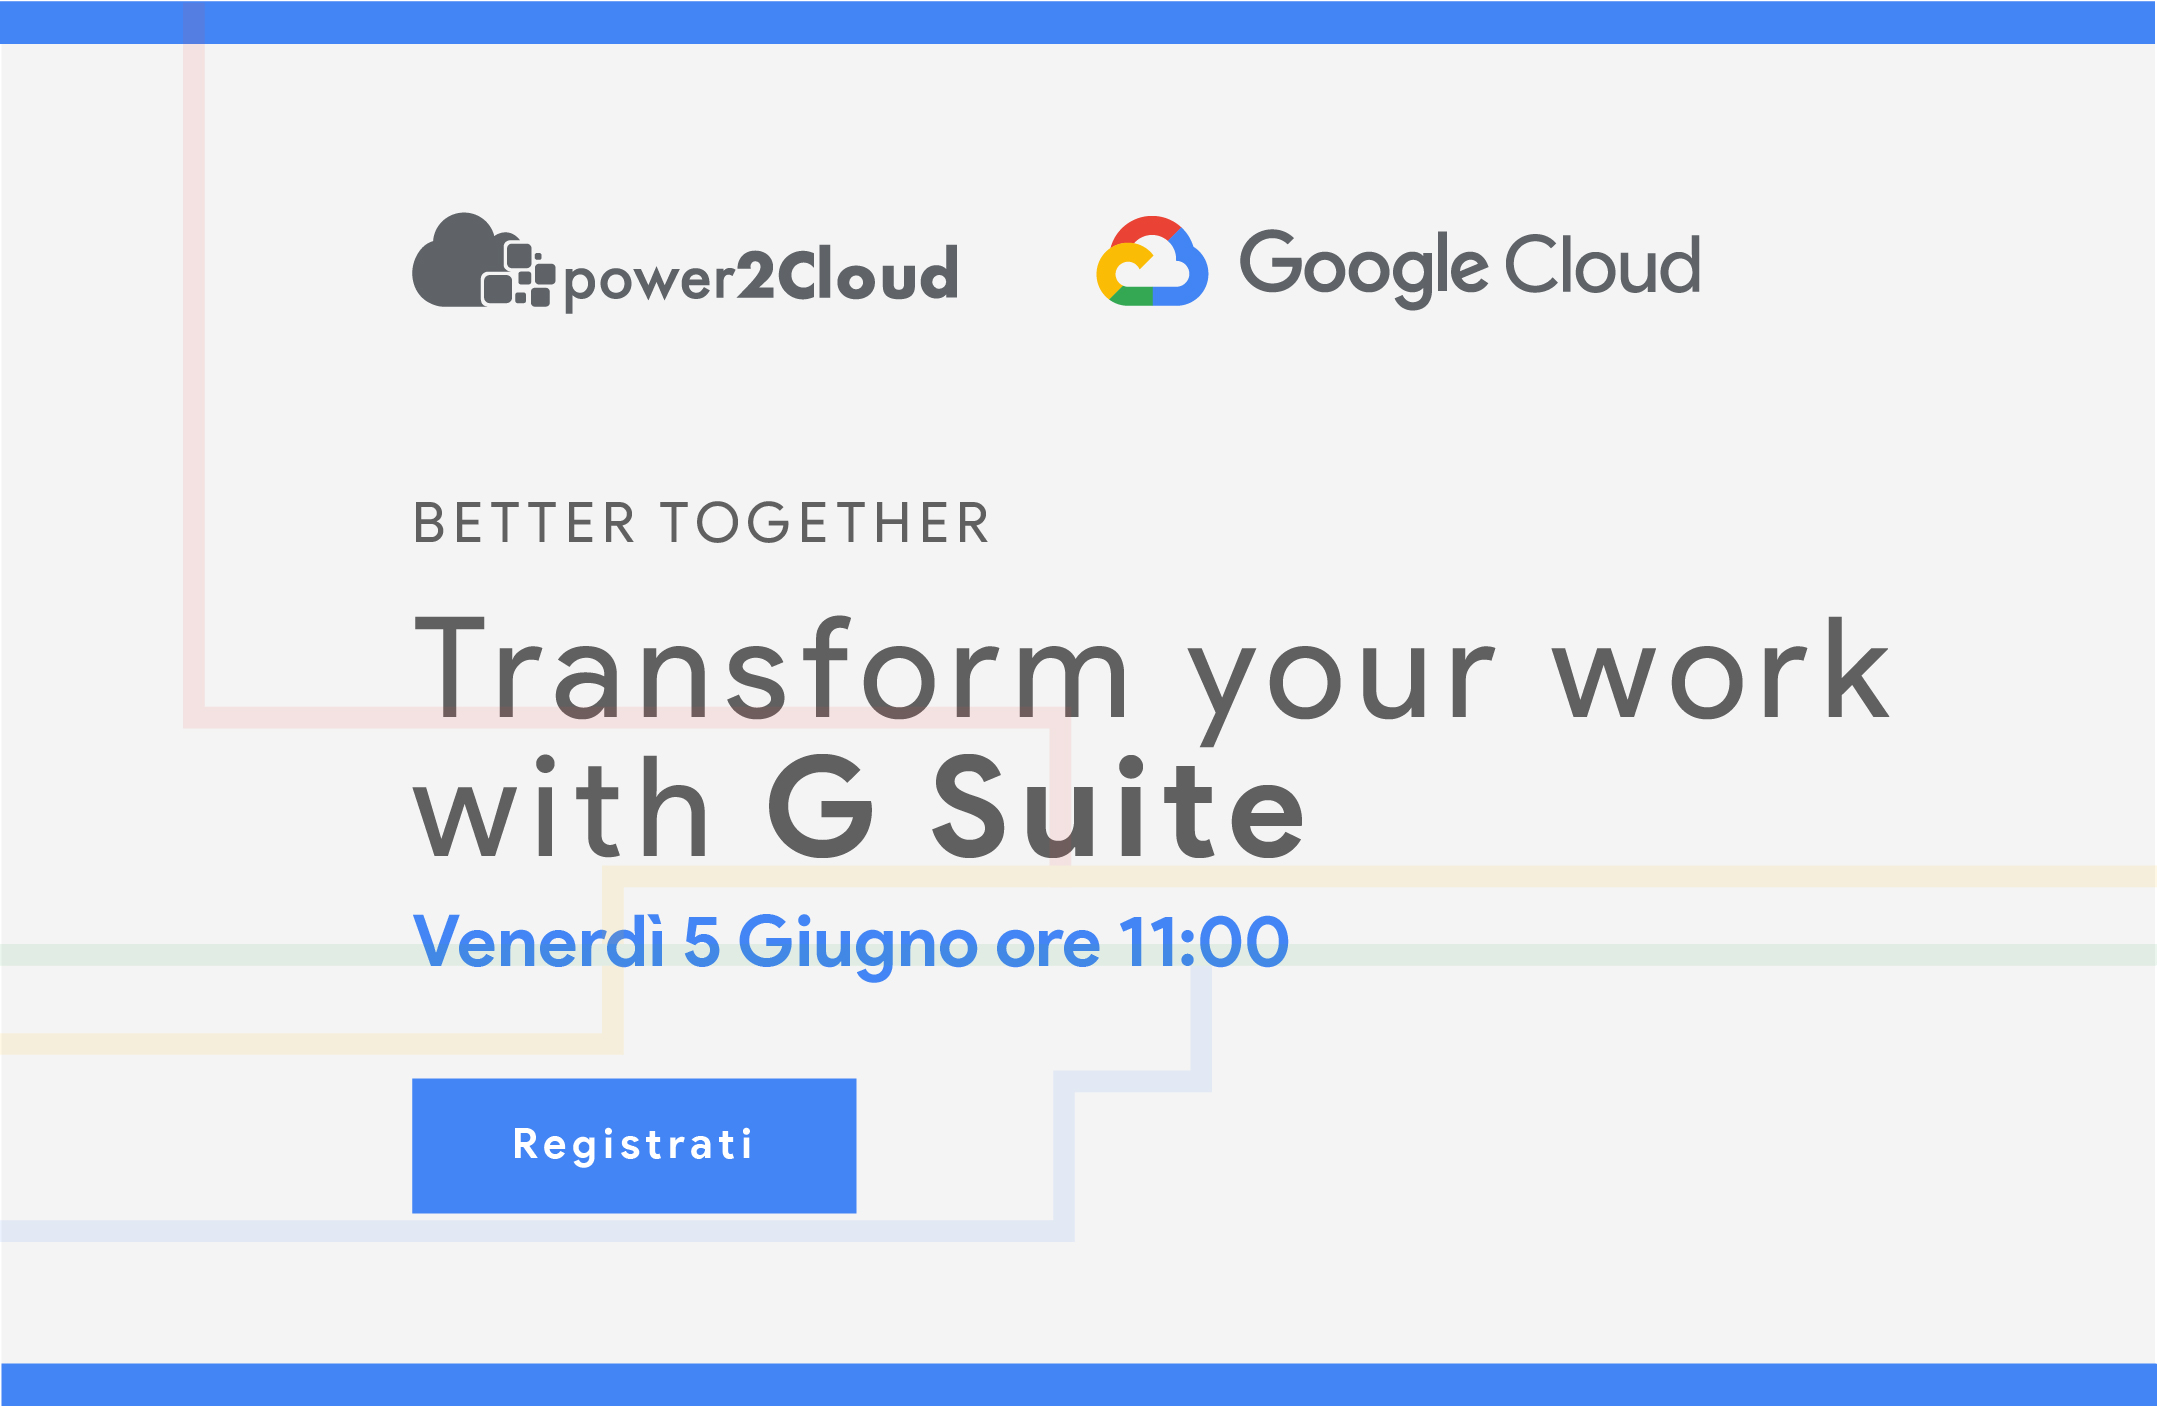 Webina.-Better-together-Transform-your-work-with-G-Suite-Webinar-G-Suite